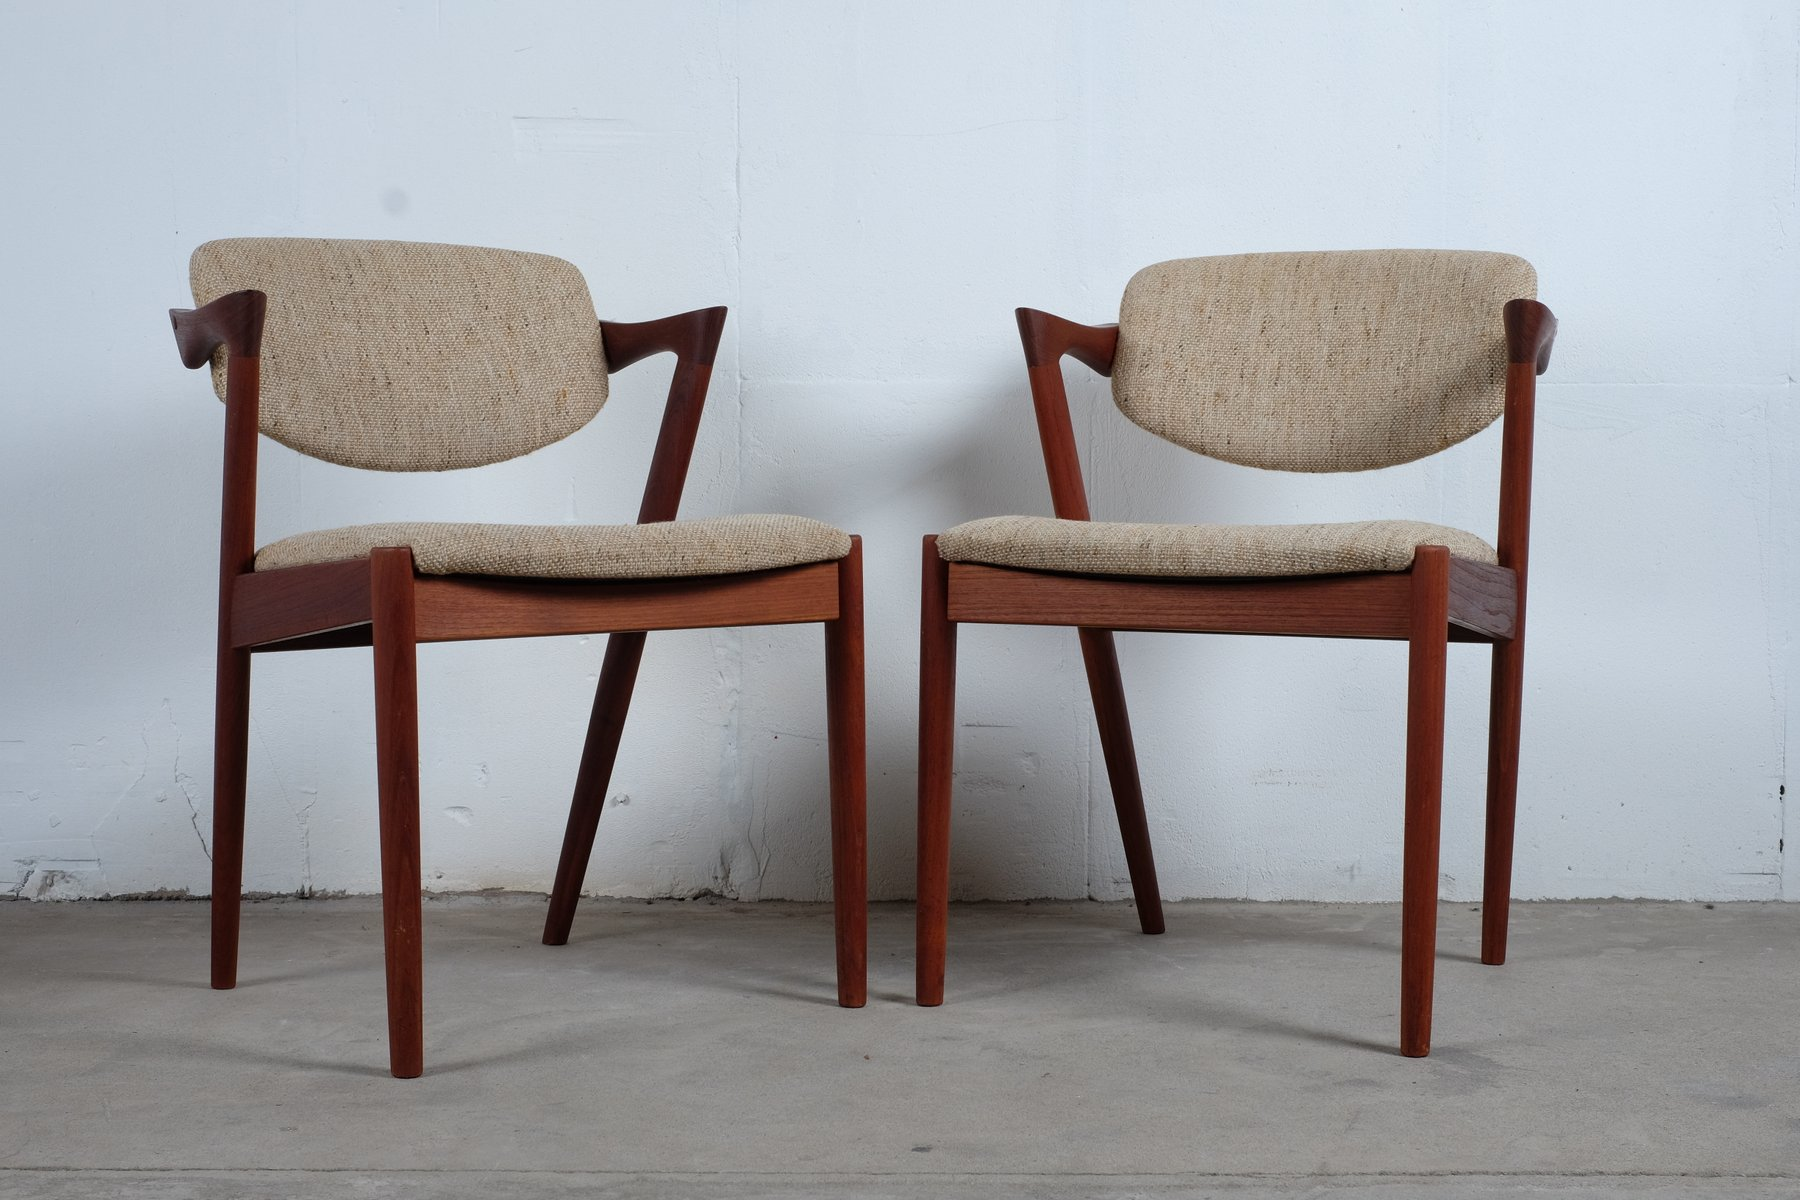 Vintage Model 42 Z Chairs By Kai Kristiansen Set Of 2 For Sale At Pamono